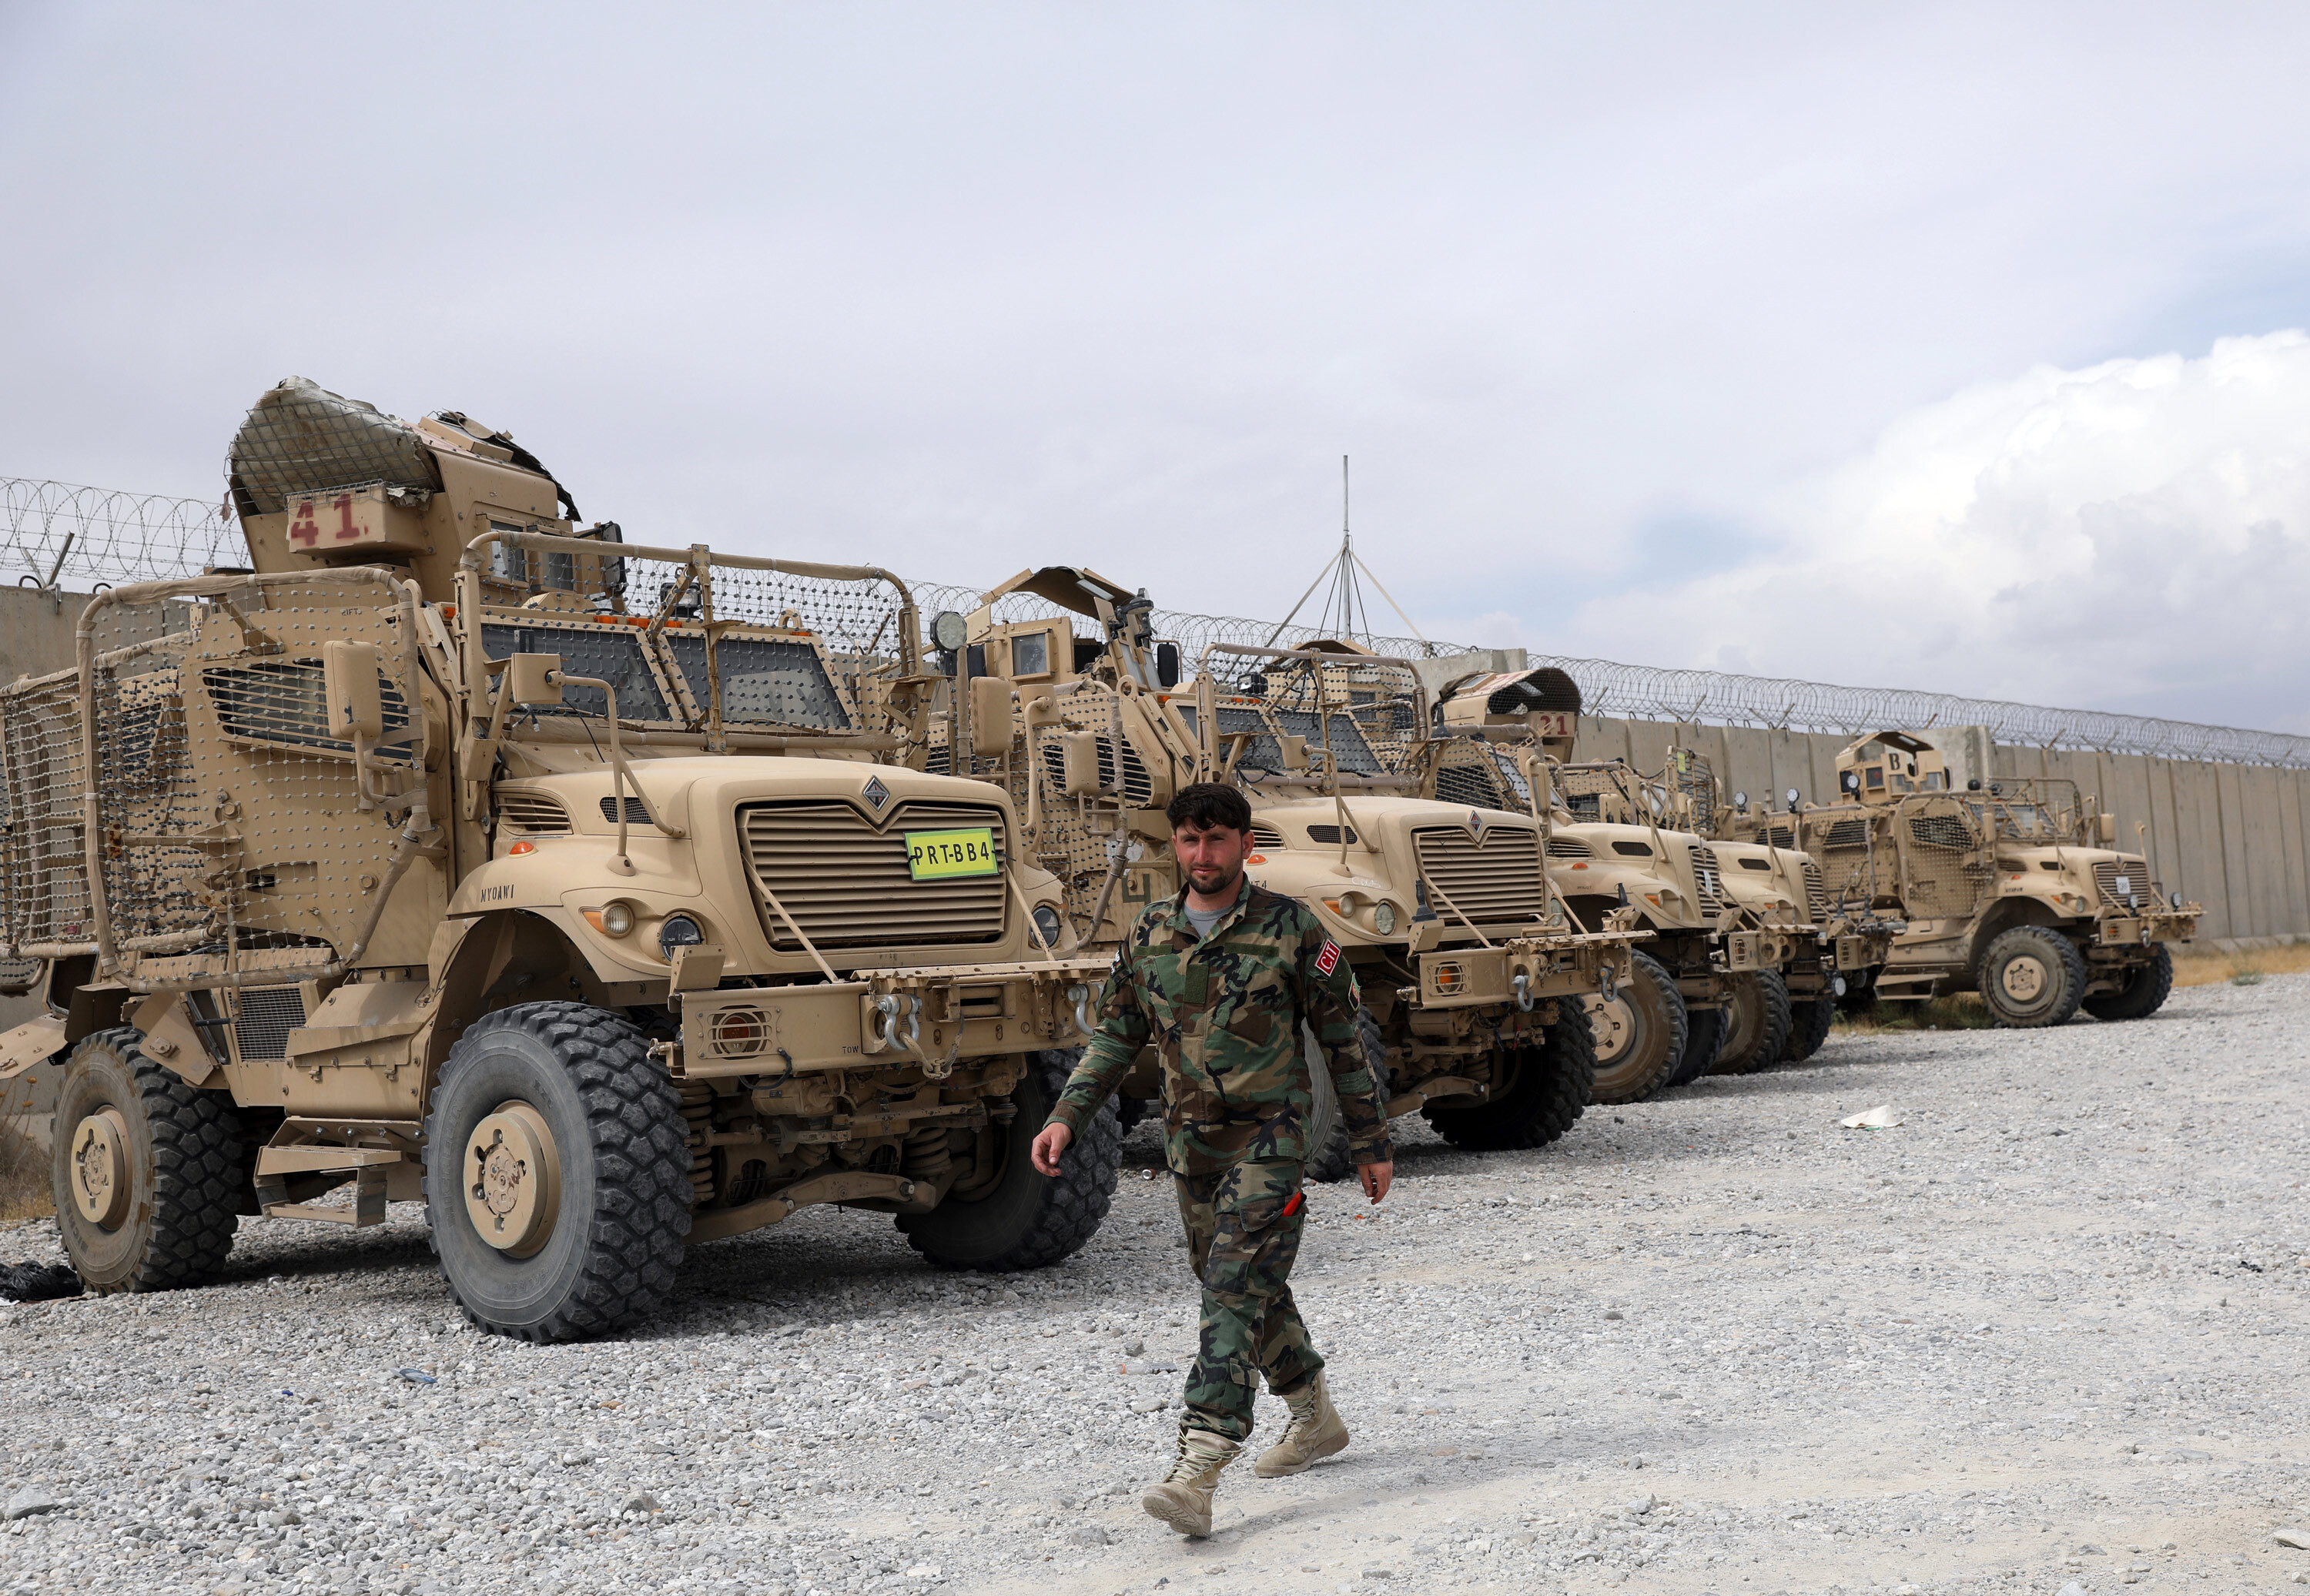 Biden has just a few weeks left to make key decisions that will shape the future of Afghanistan